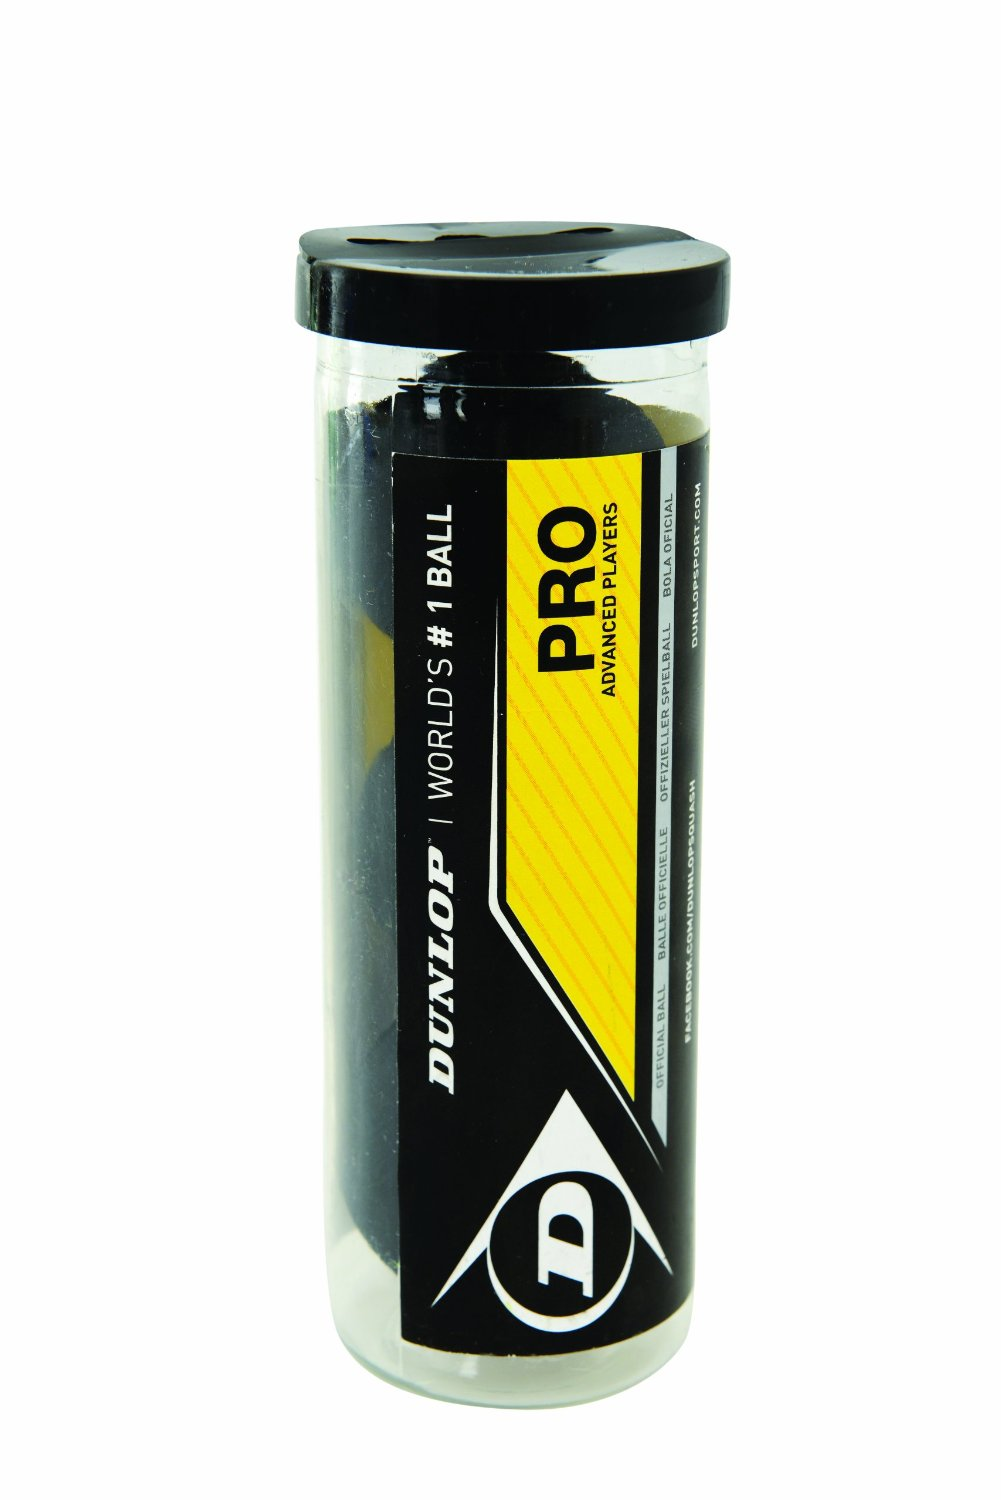 Dunlop Pro Double Yellow Dot Balls (3 Ball Tube)